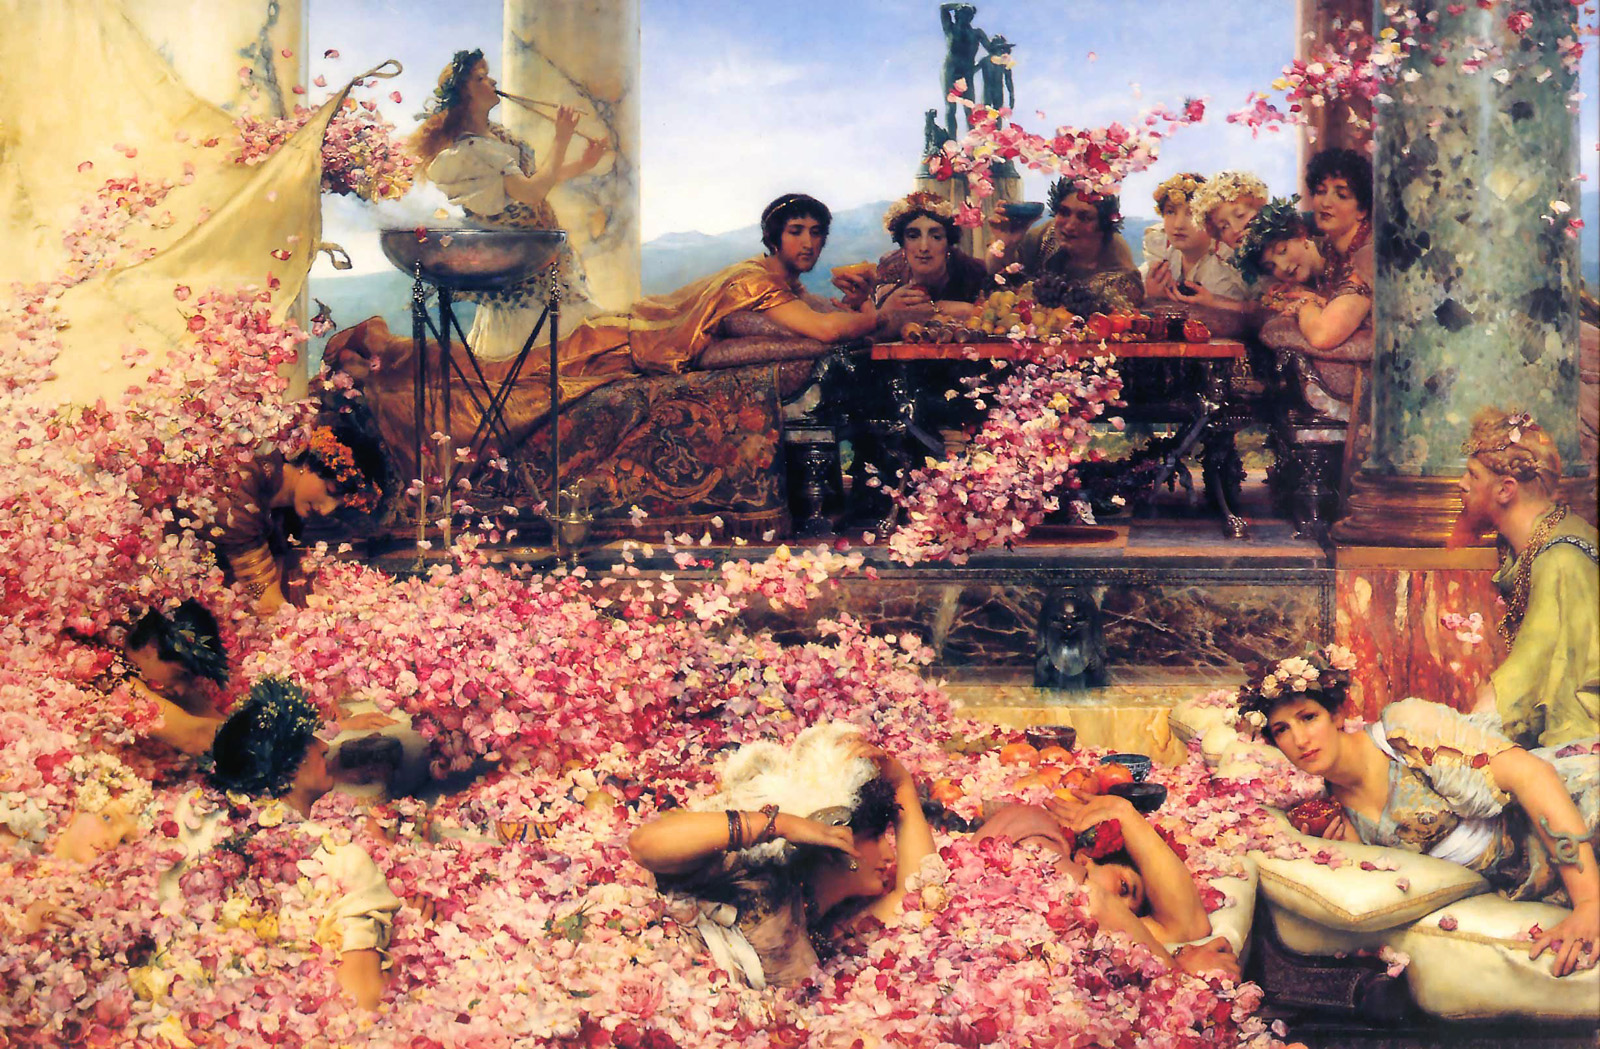 The Roses of Heliogabalus, Lawrence Alma-Tadema (Source : Wikimedia Commons)